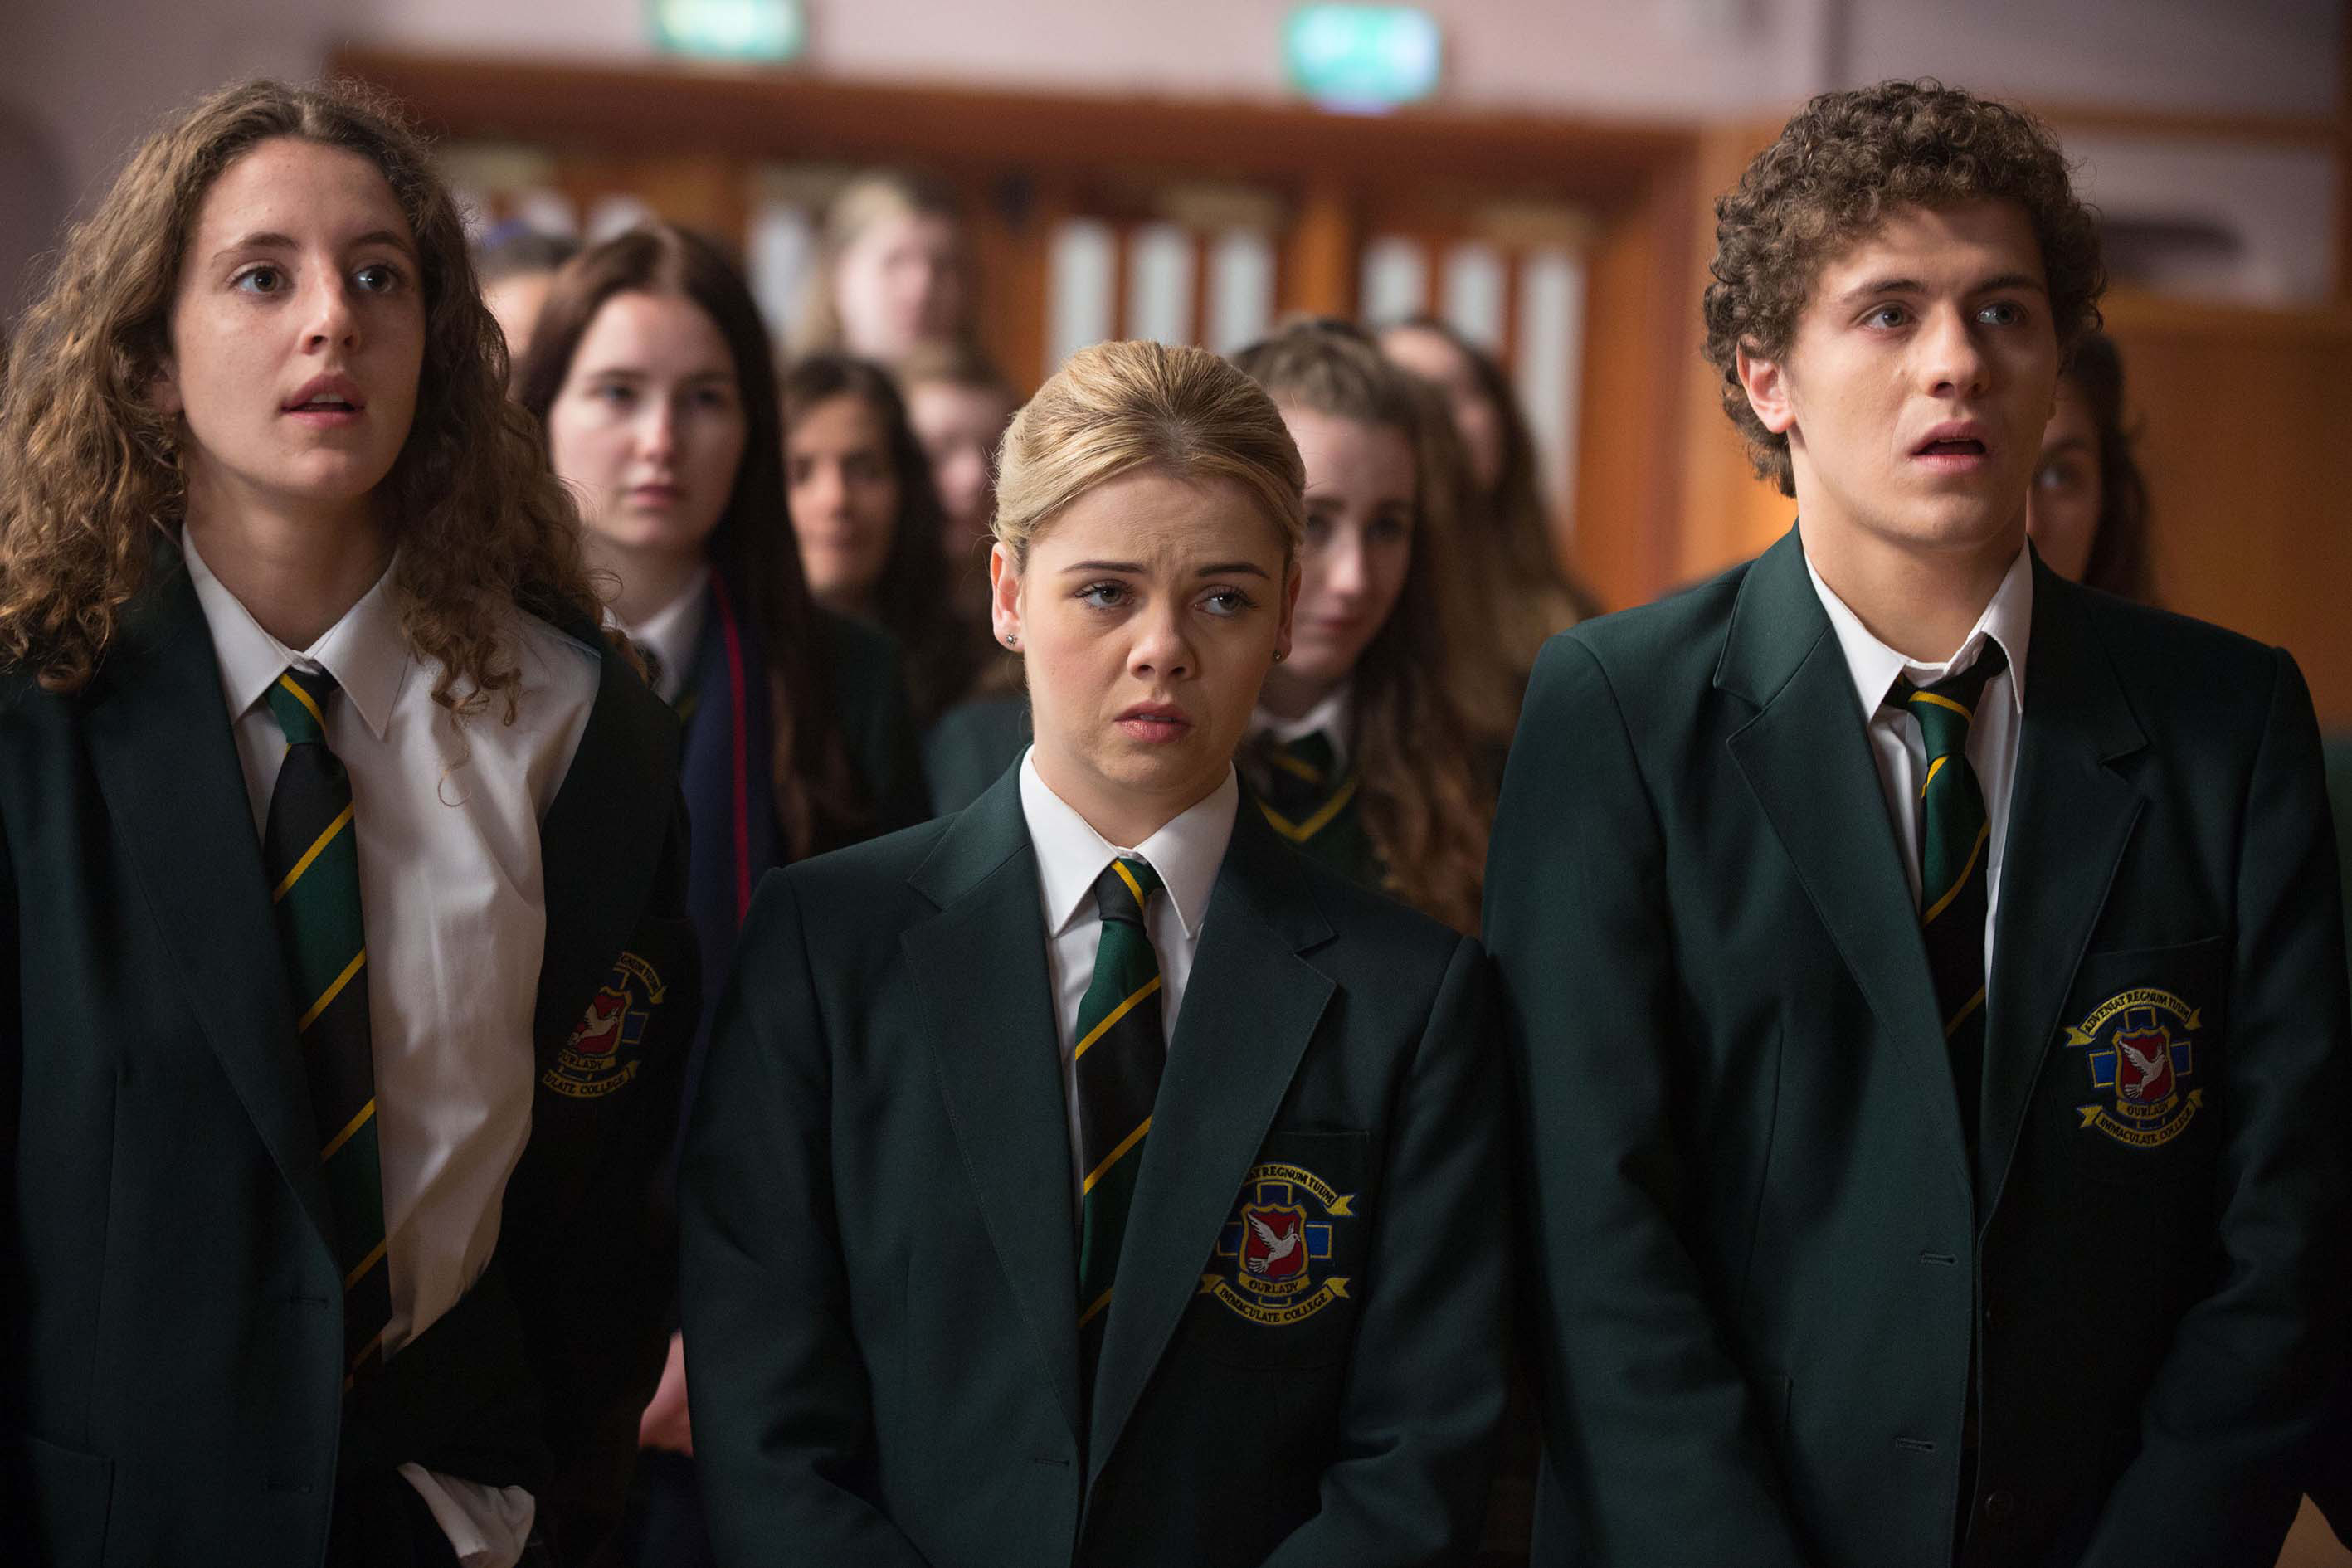 The cast of Derry Girls in their school uniforms